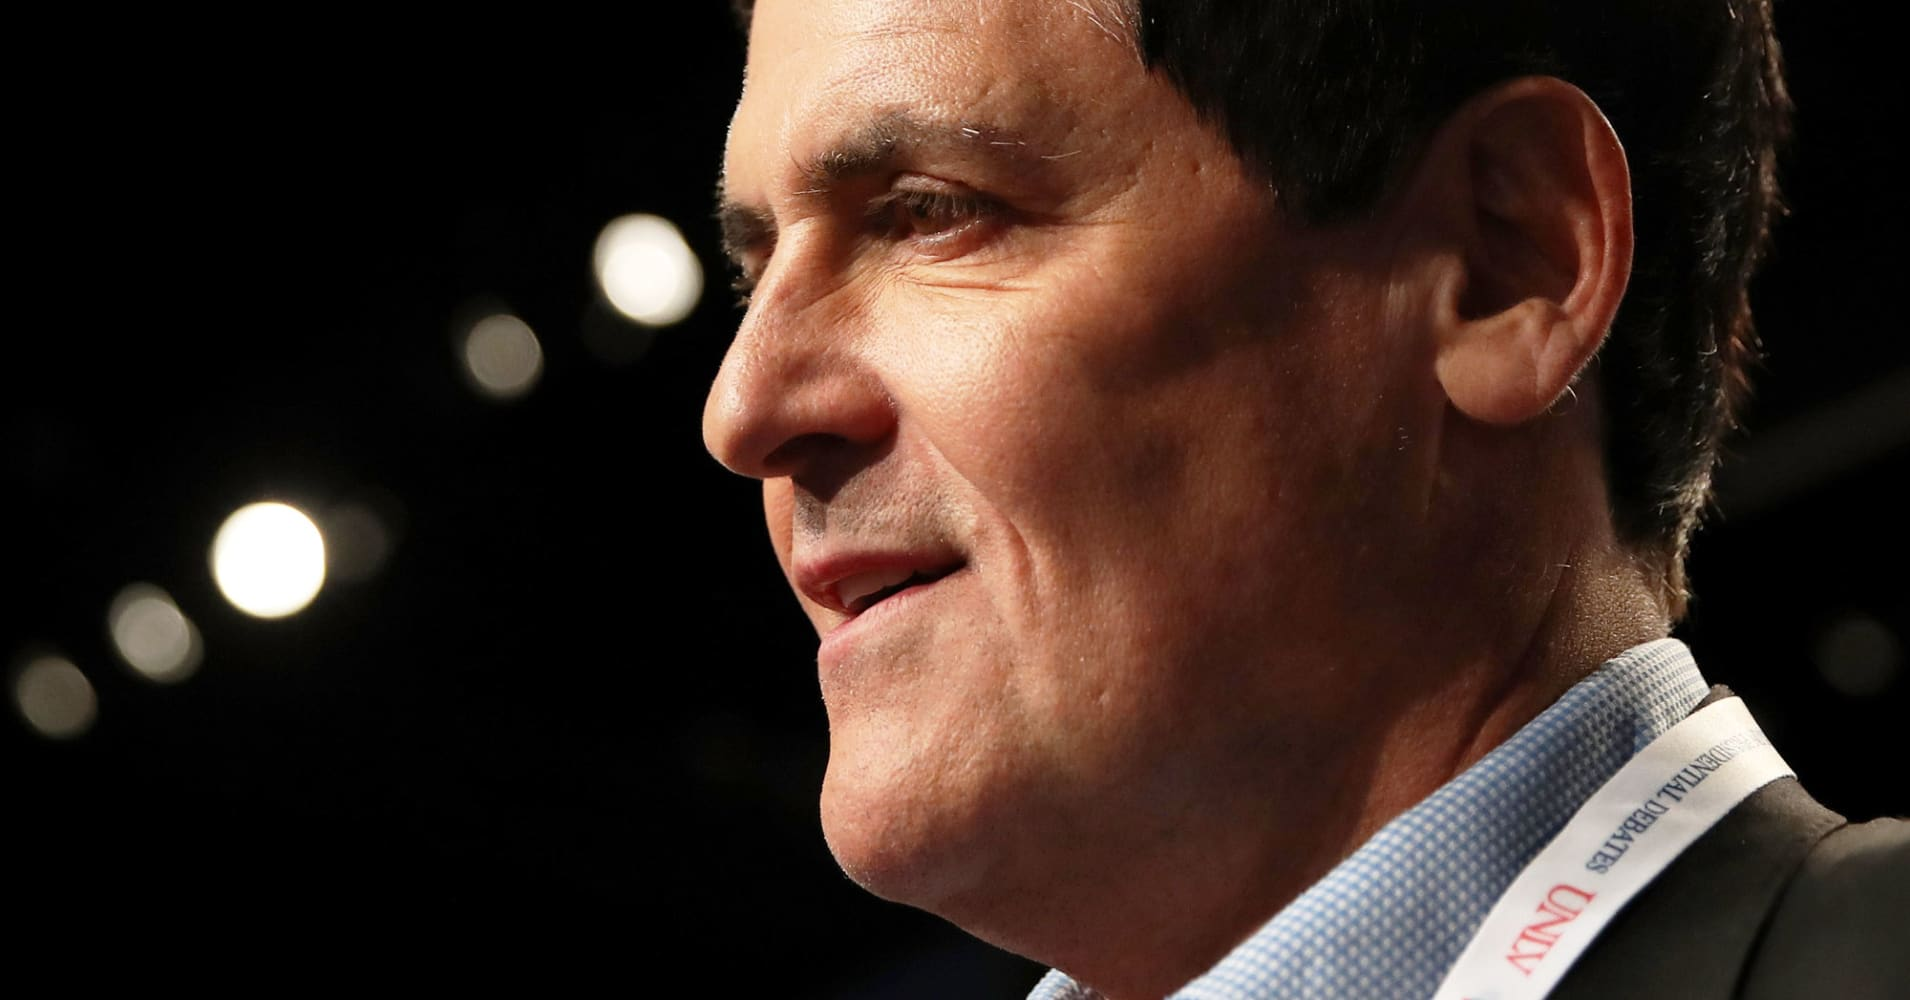 Mark Cuban: Basic Income 'the Worst Possible Response' to Job Losses from Robots